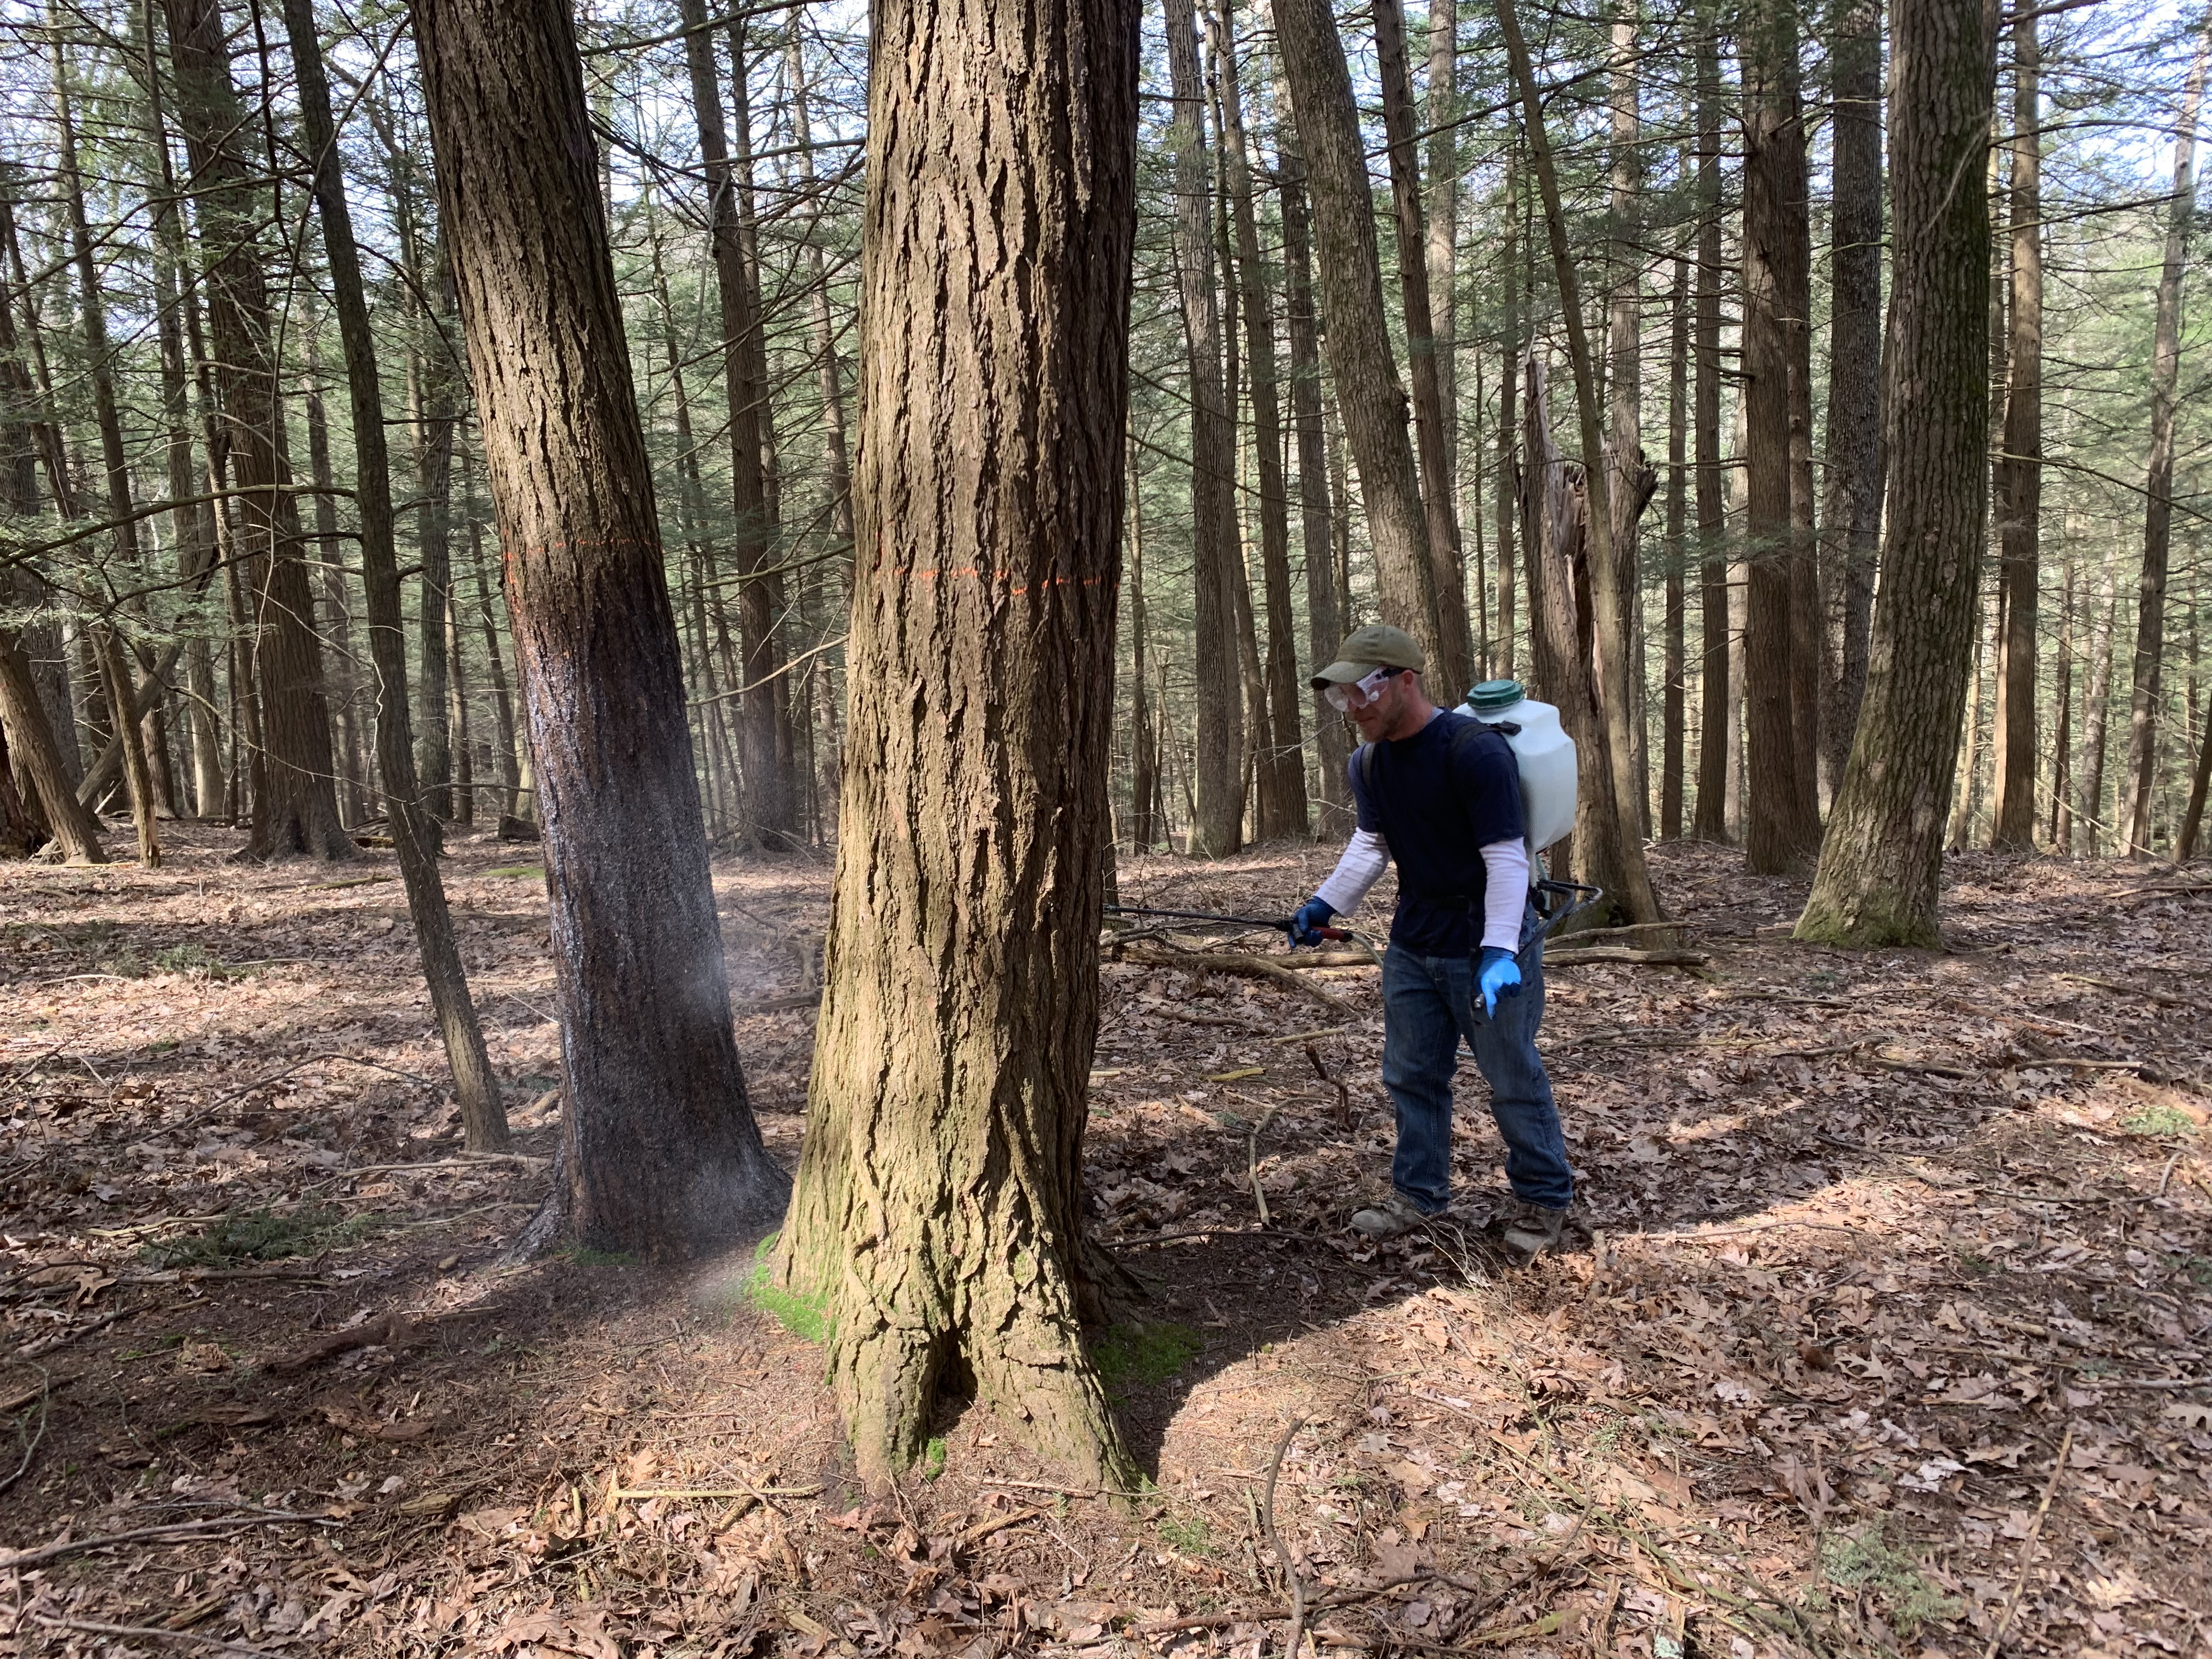 FORECON, Inc. has completed FORECON treats 3 State Parks to suppress the Hemlock Wooly Adelgid